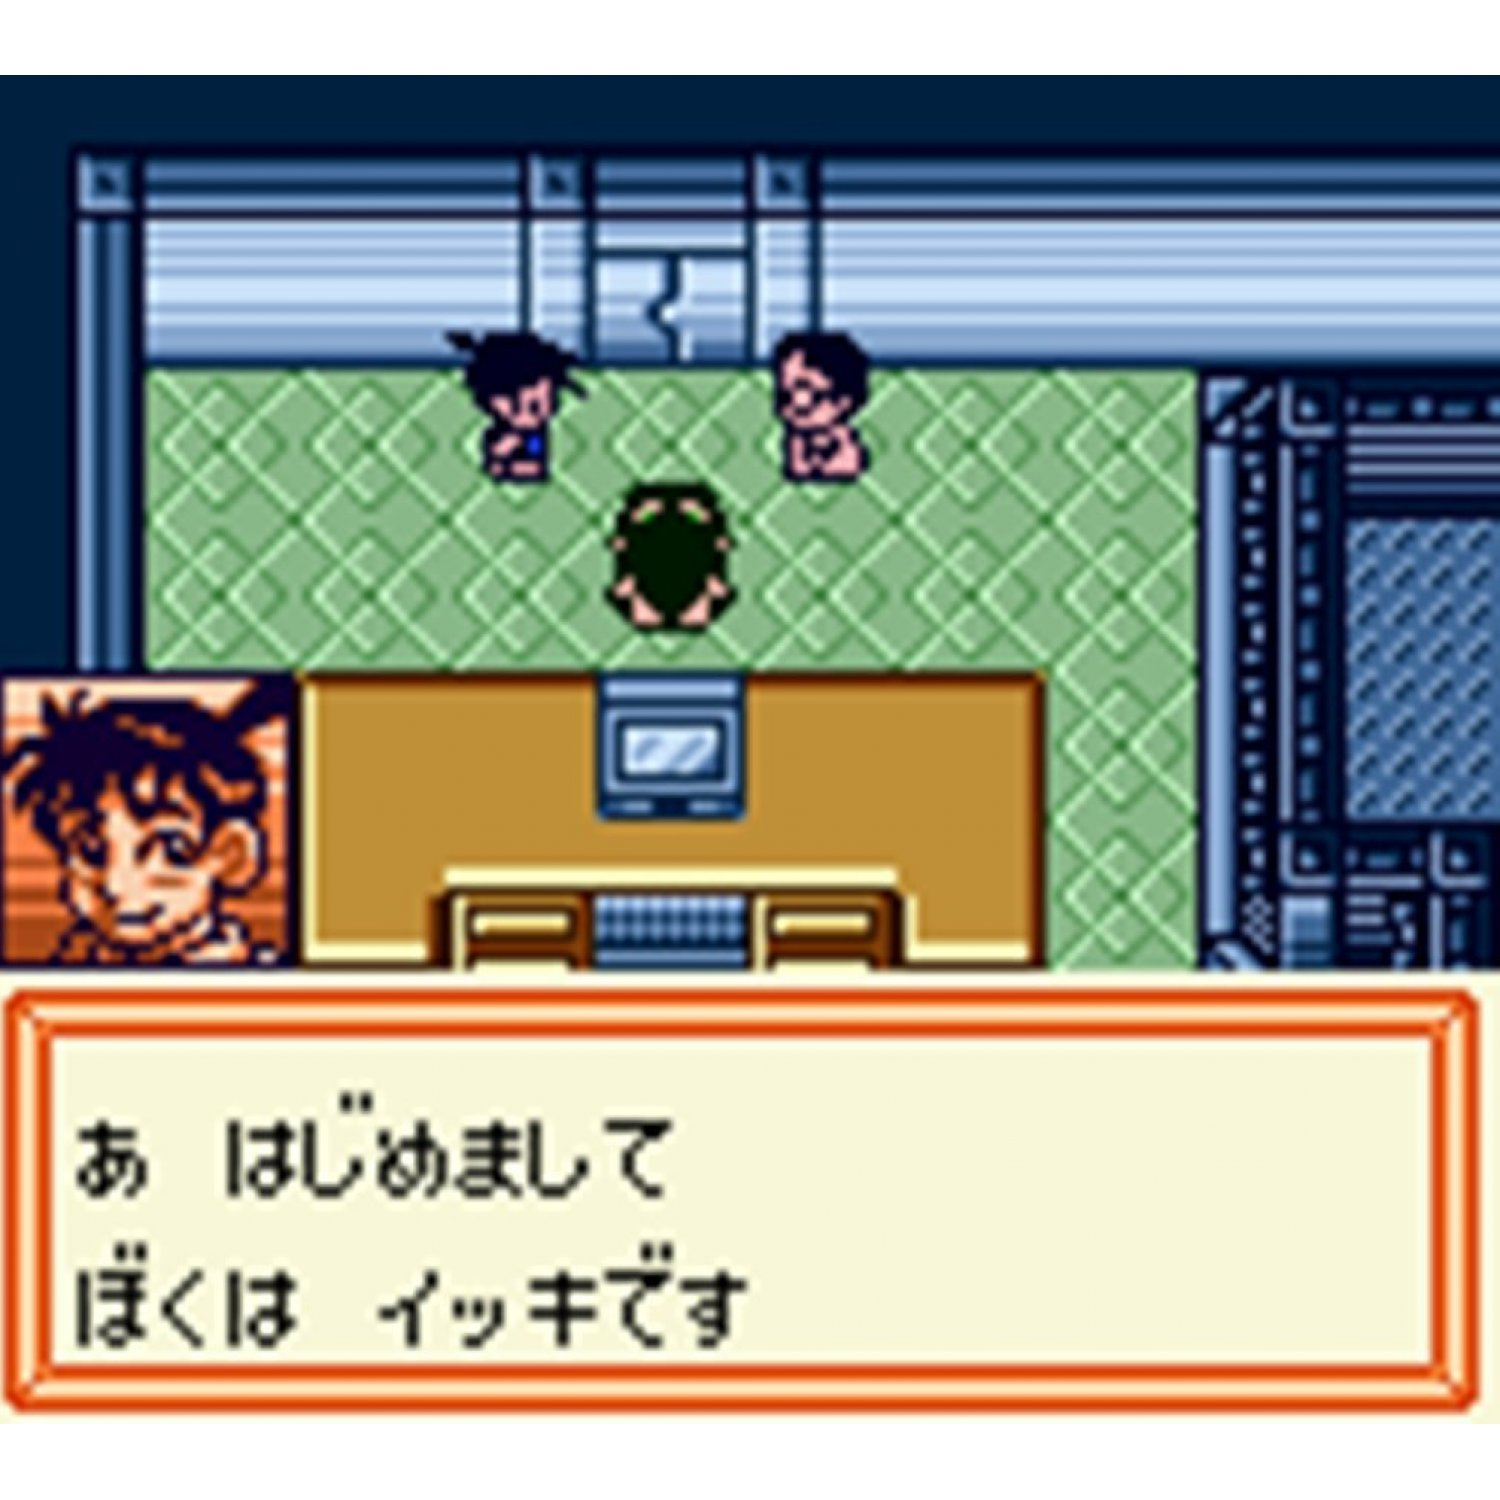 Take a Look Back in Medarot Classics for 3DS - Playasia Blog